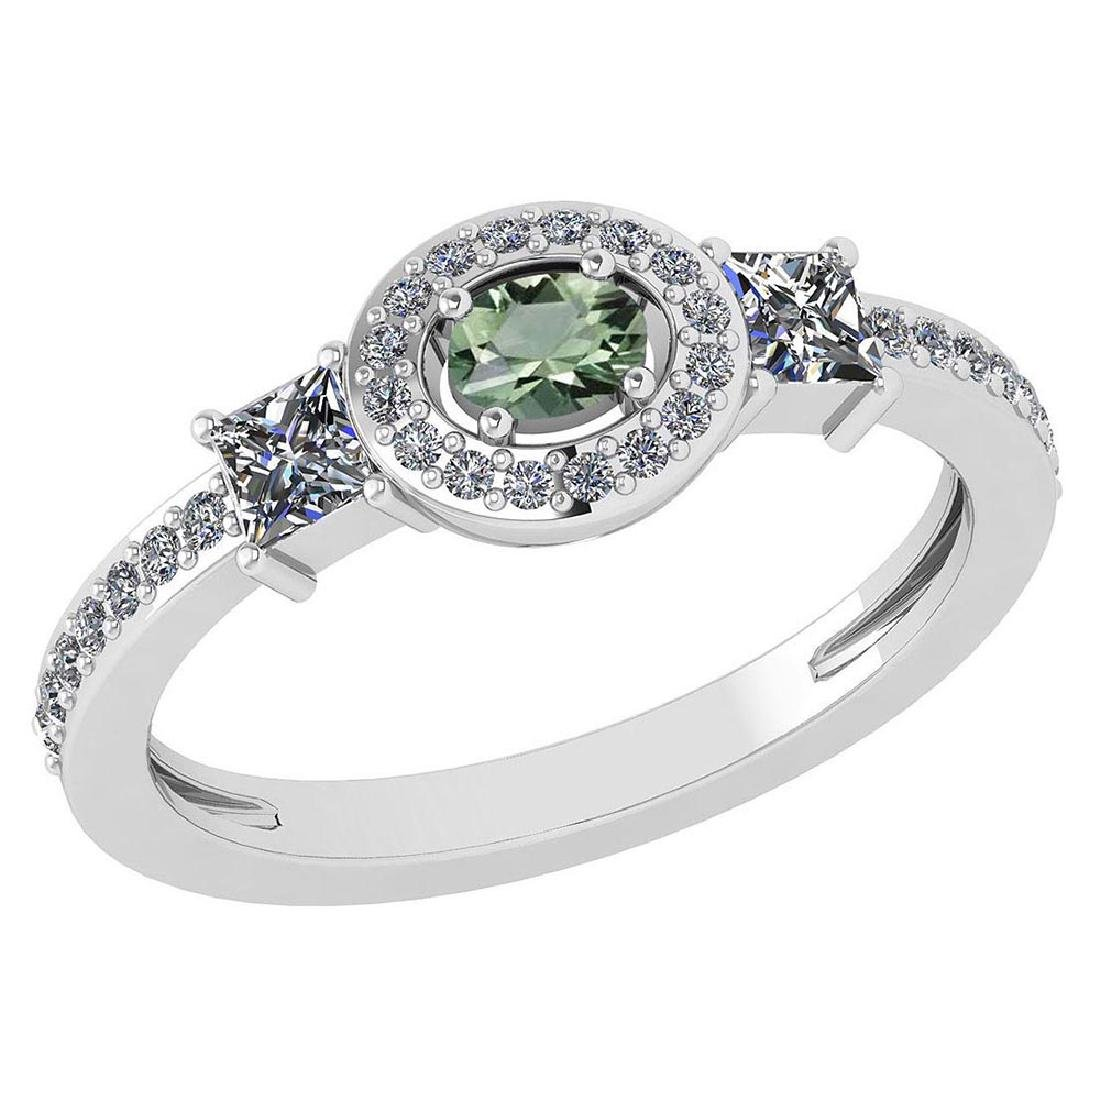 Certified 0.77 Ctw Green Amethyst And Diamond 14k White